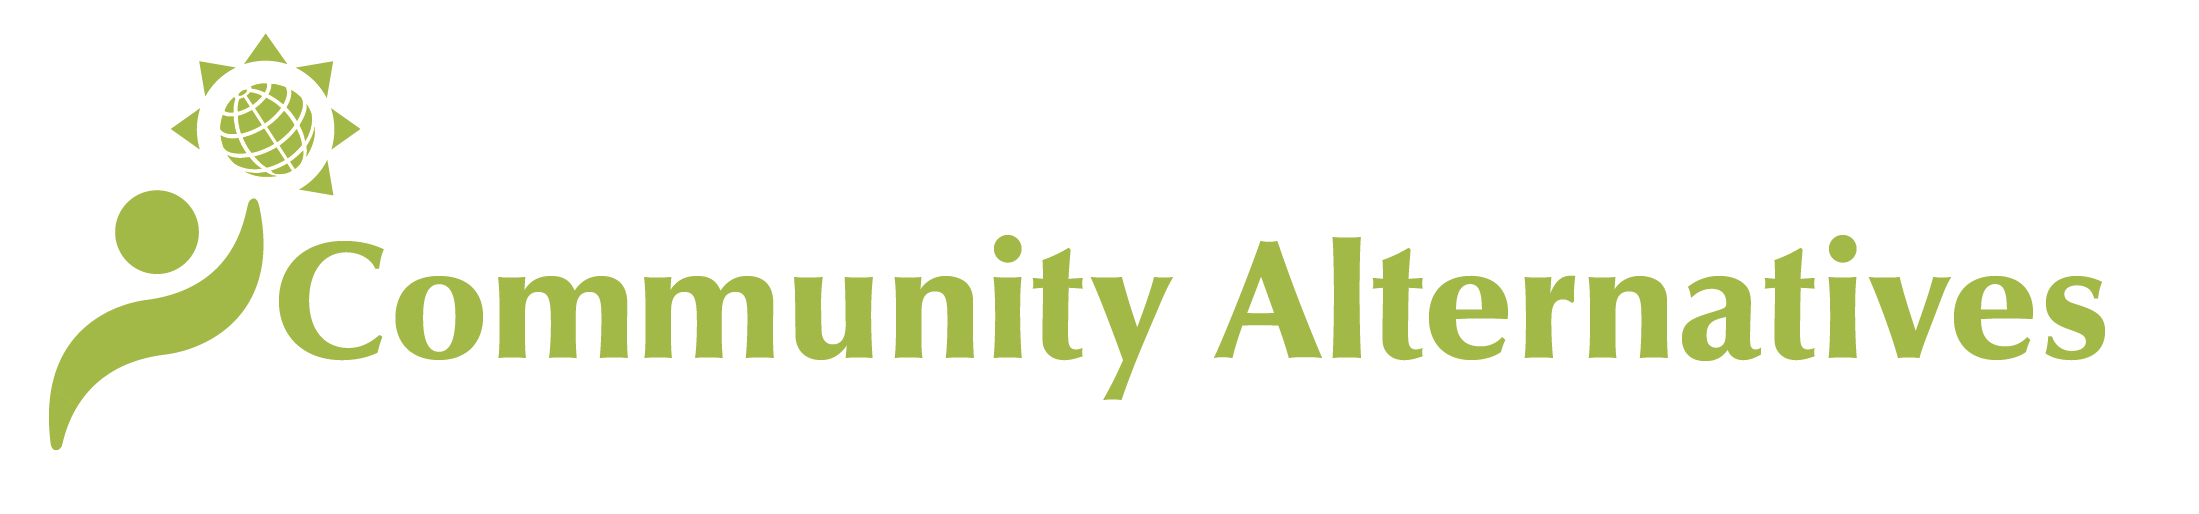 Community Alternatives